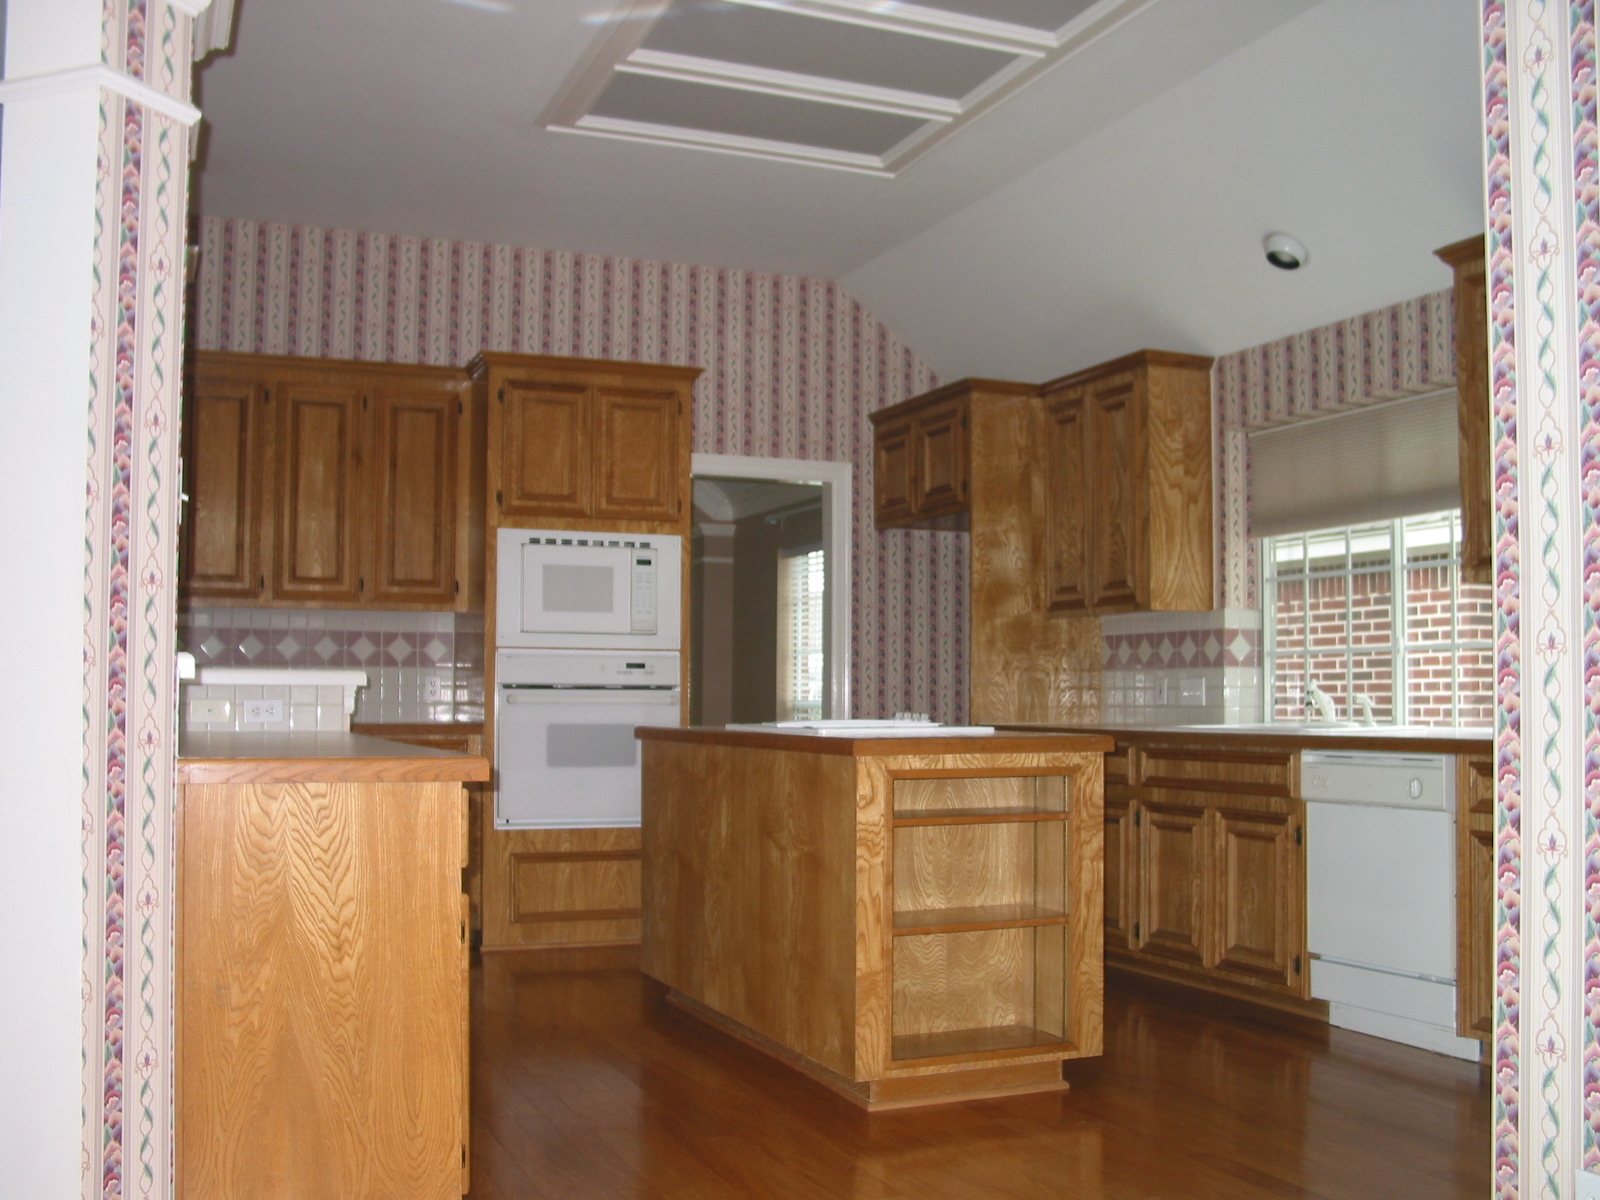 kitchen-polomeadow.jpg